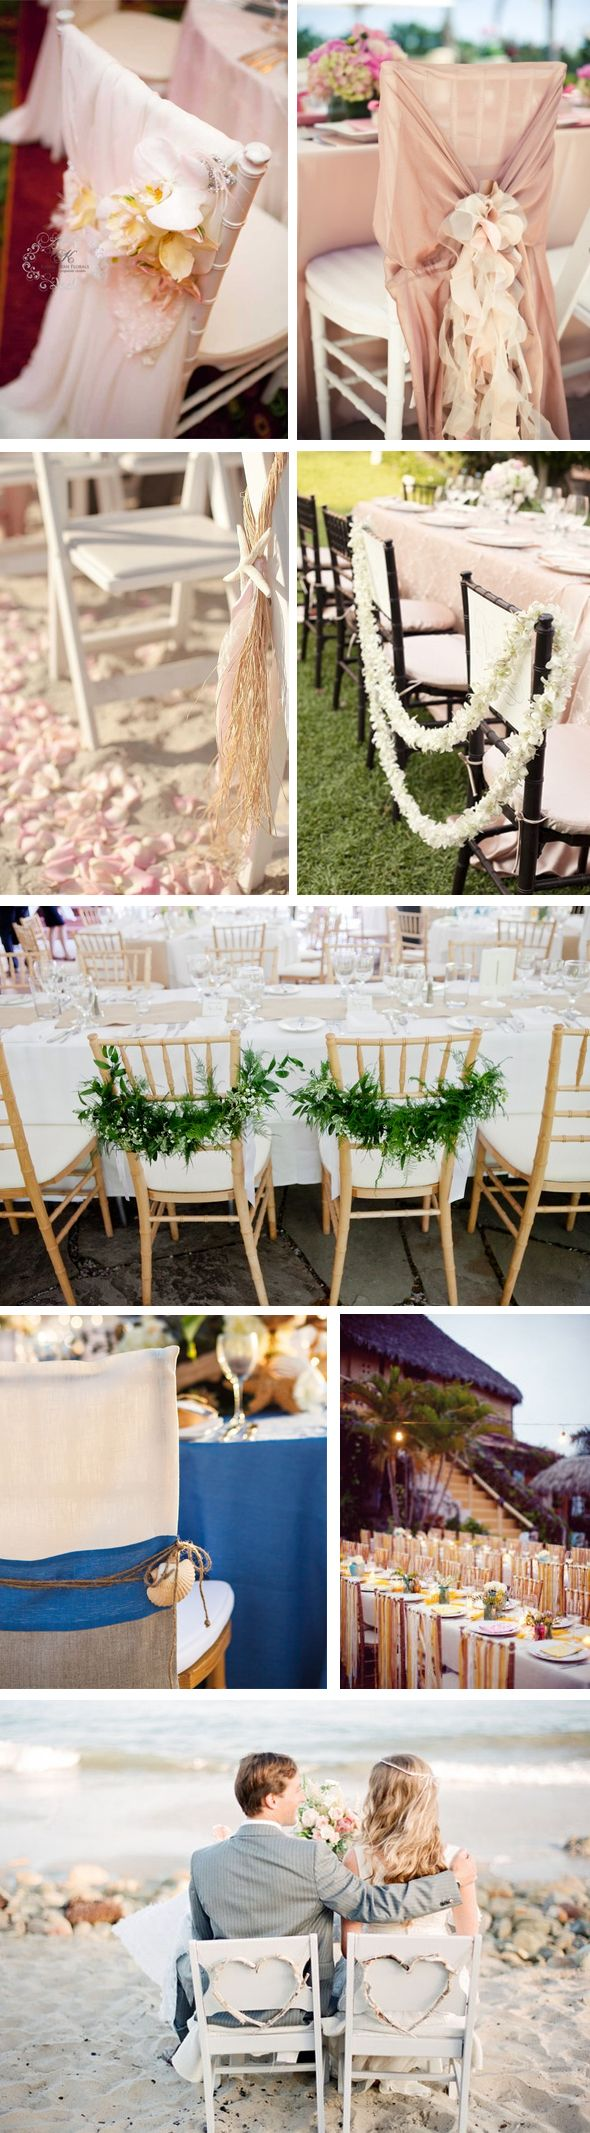 Beach wedding chair sashes - Find This Pin And More On Fun Wedding Chairs